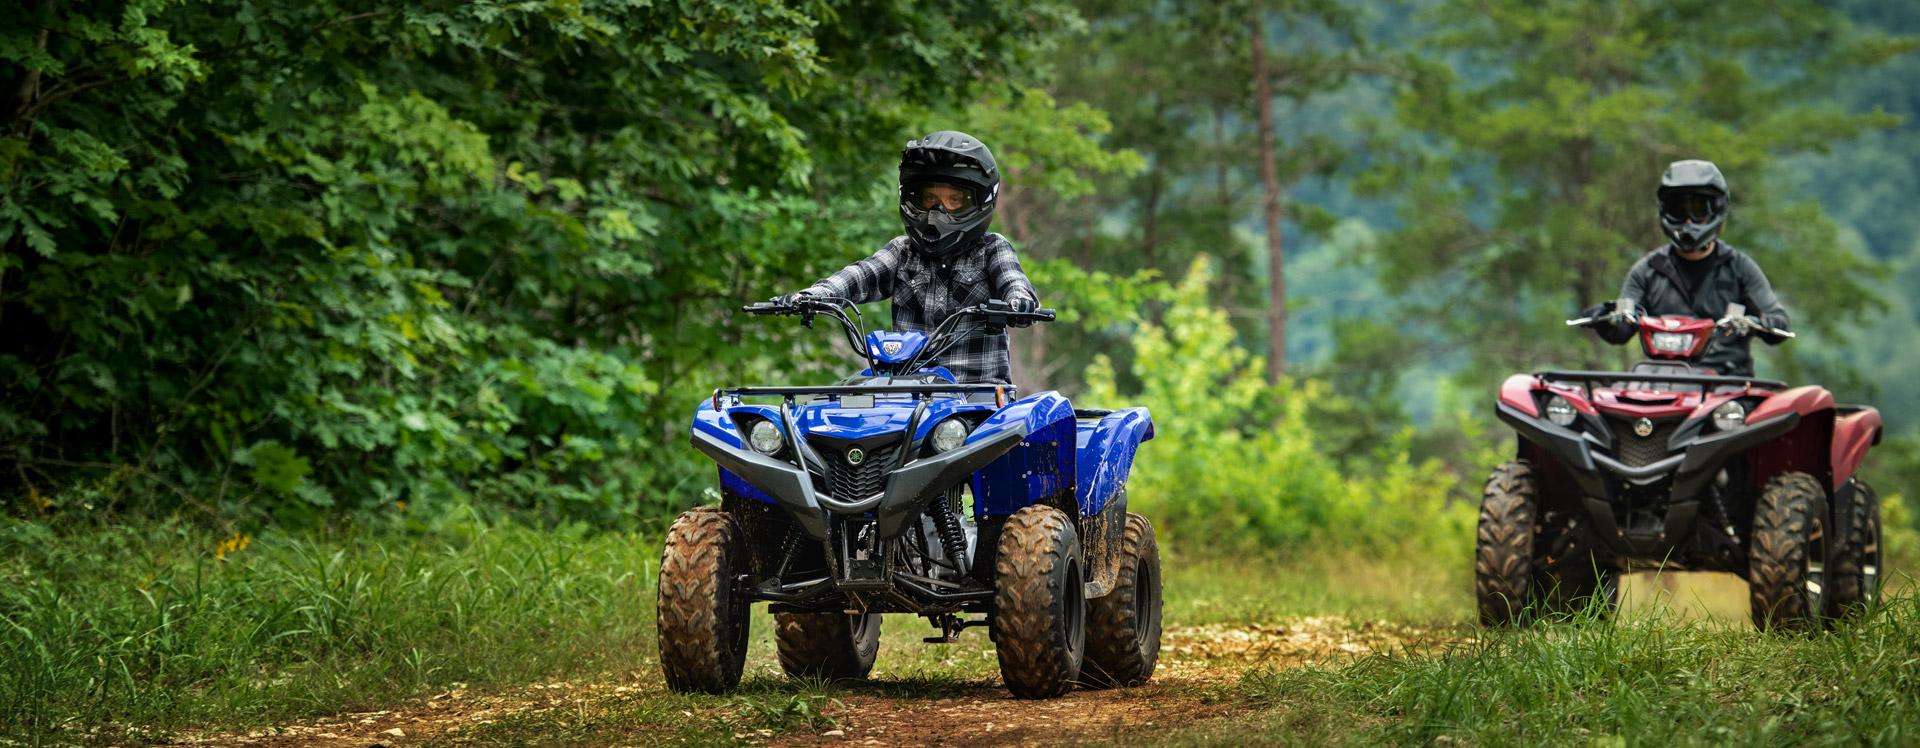 2020 Yamaha Grizzly-90